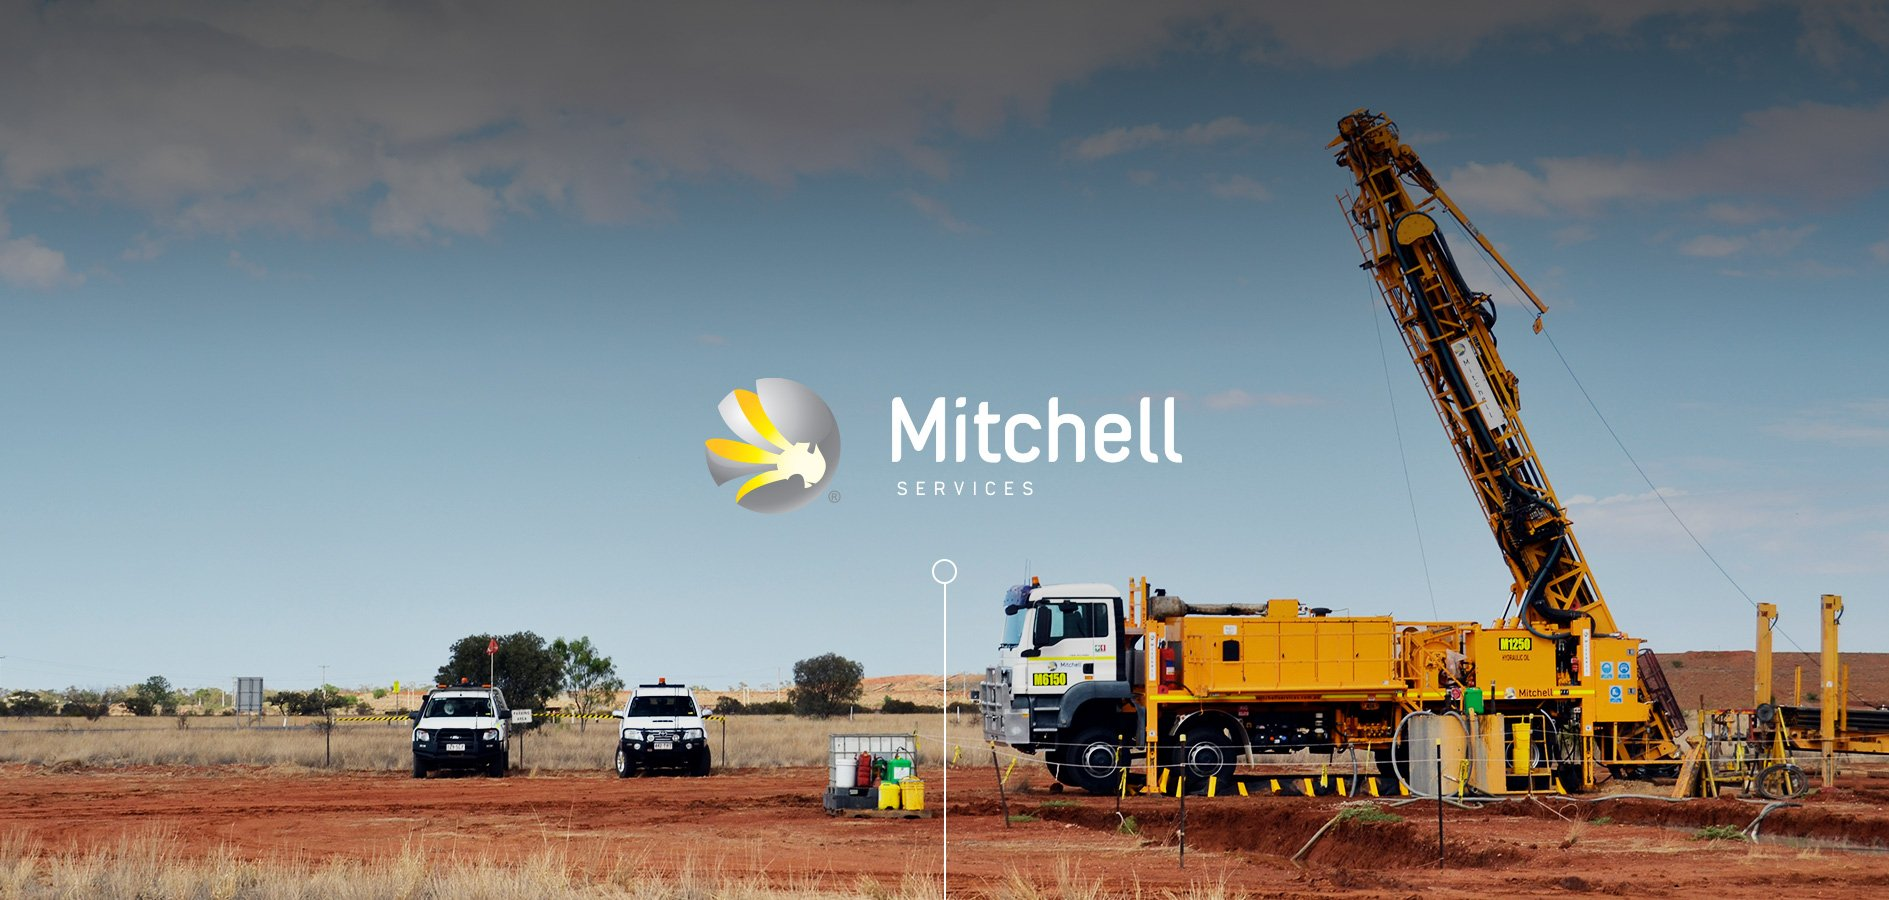 Graphic Design for Branding Design for Mitchell Services by Sketch Corp.